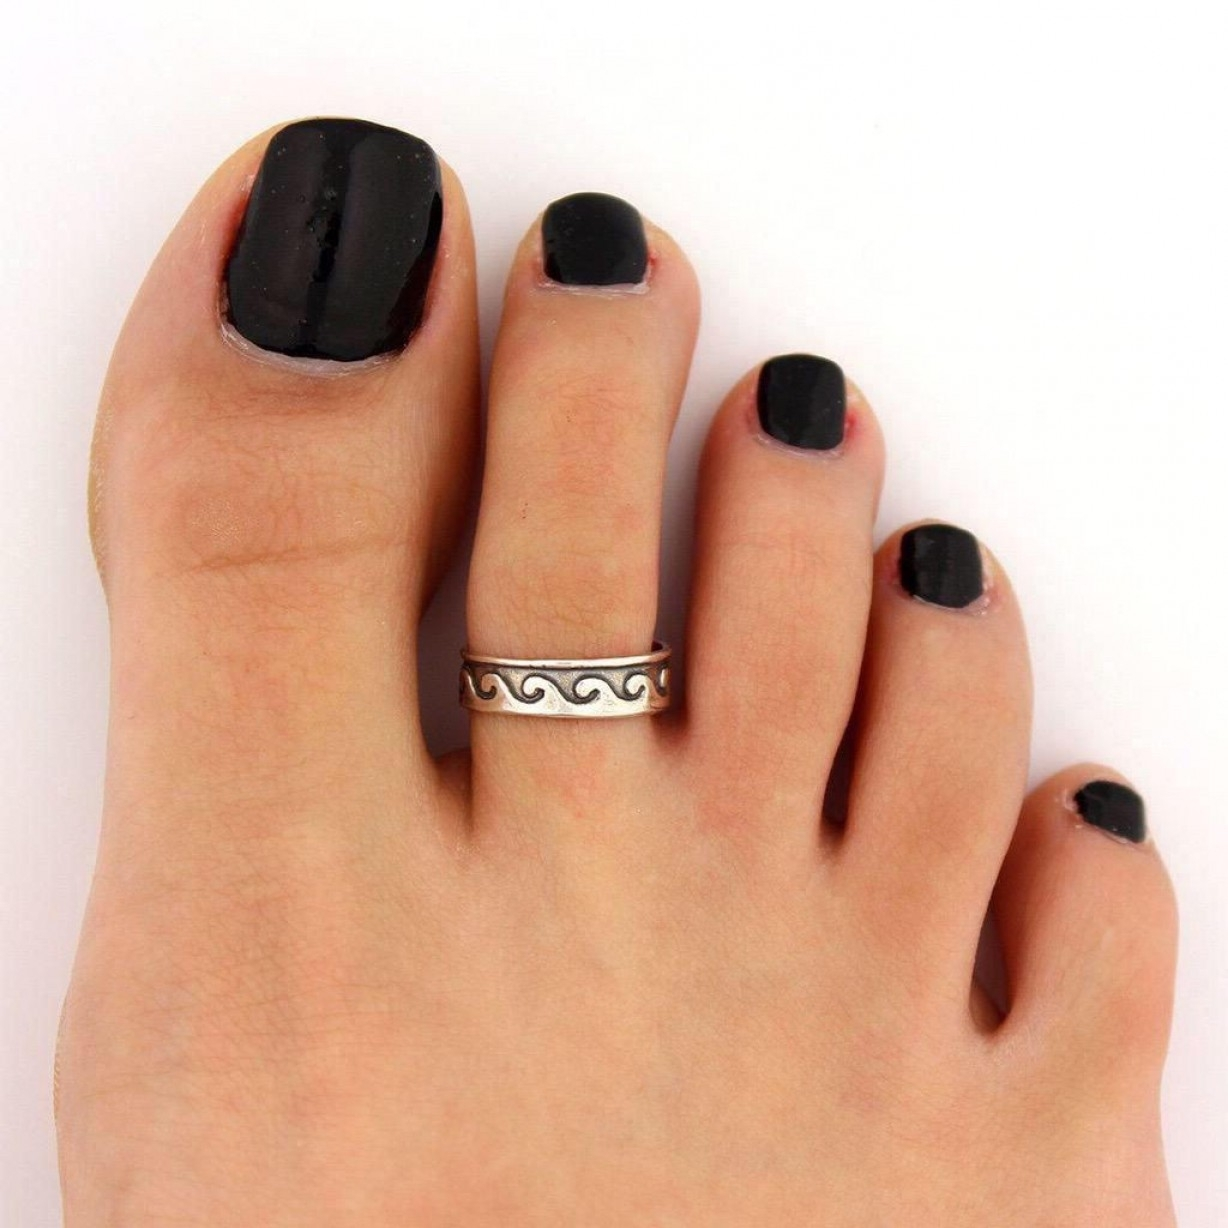 Big Lovely Toe Rings | Oblacoder Pertaining To 2017 Big Toe Rings (View 5 of 15)